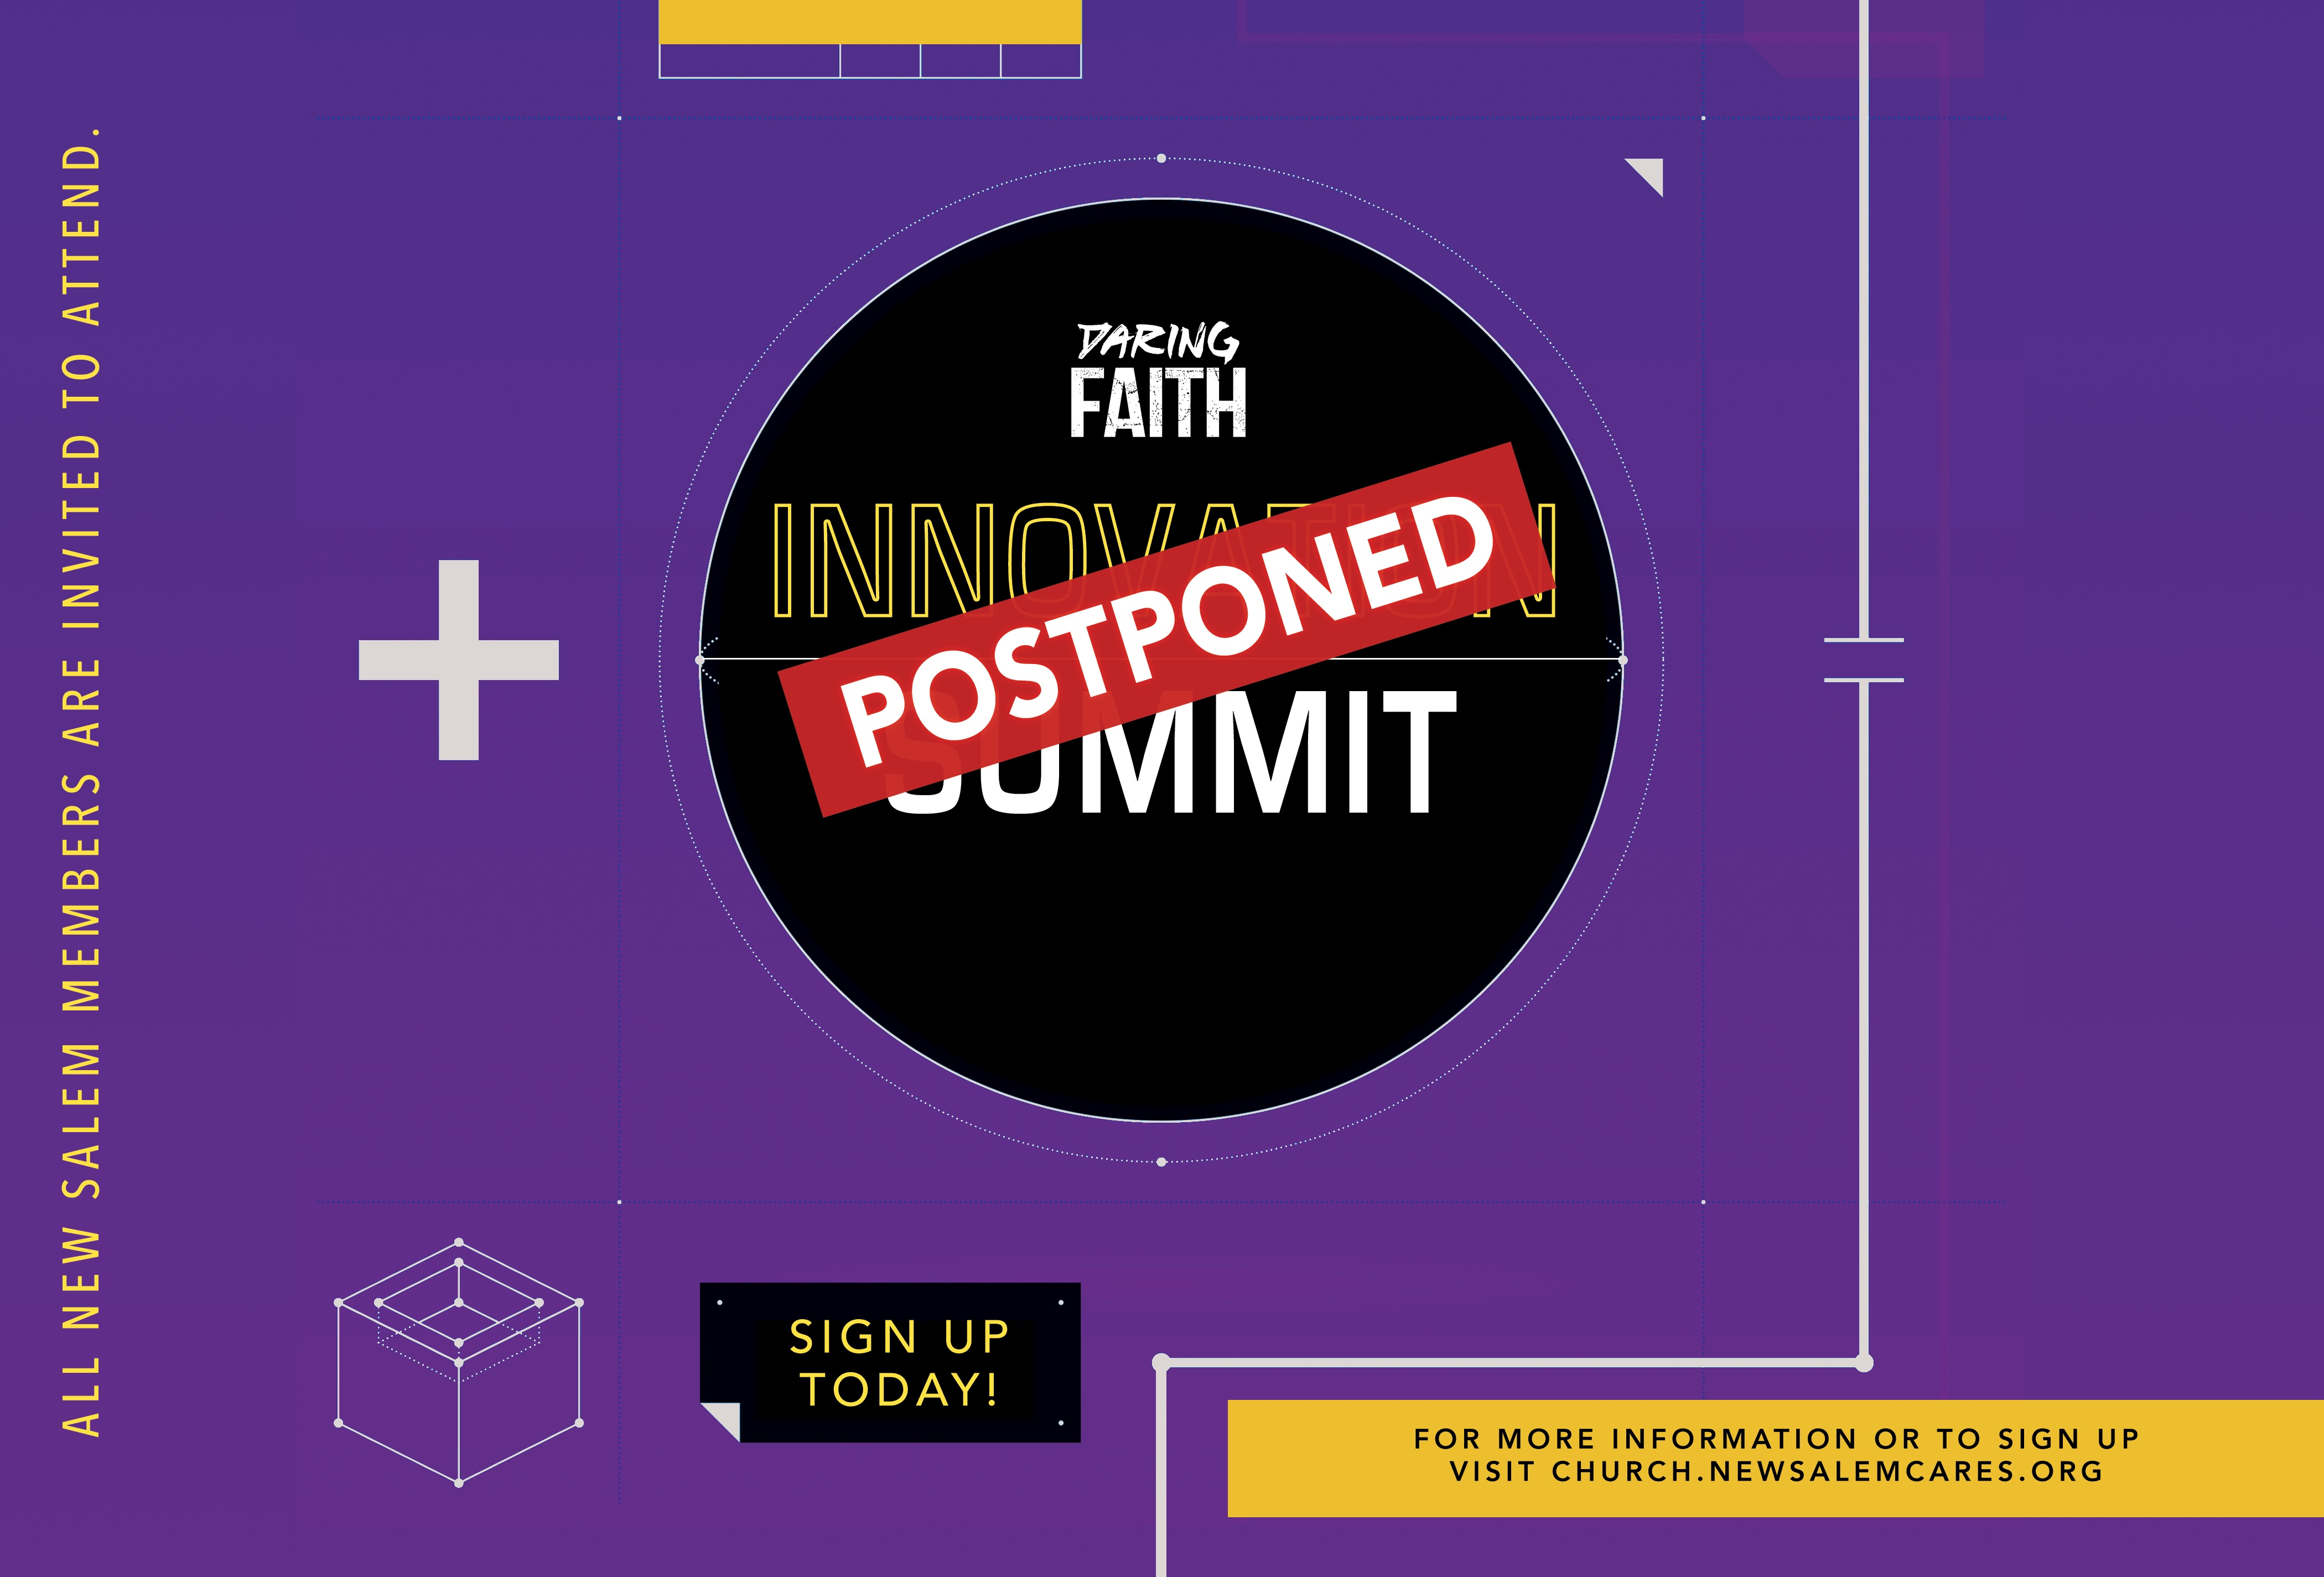 Innovation Summit is Postponed